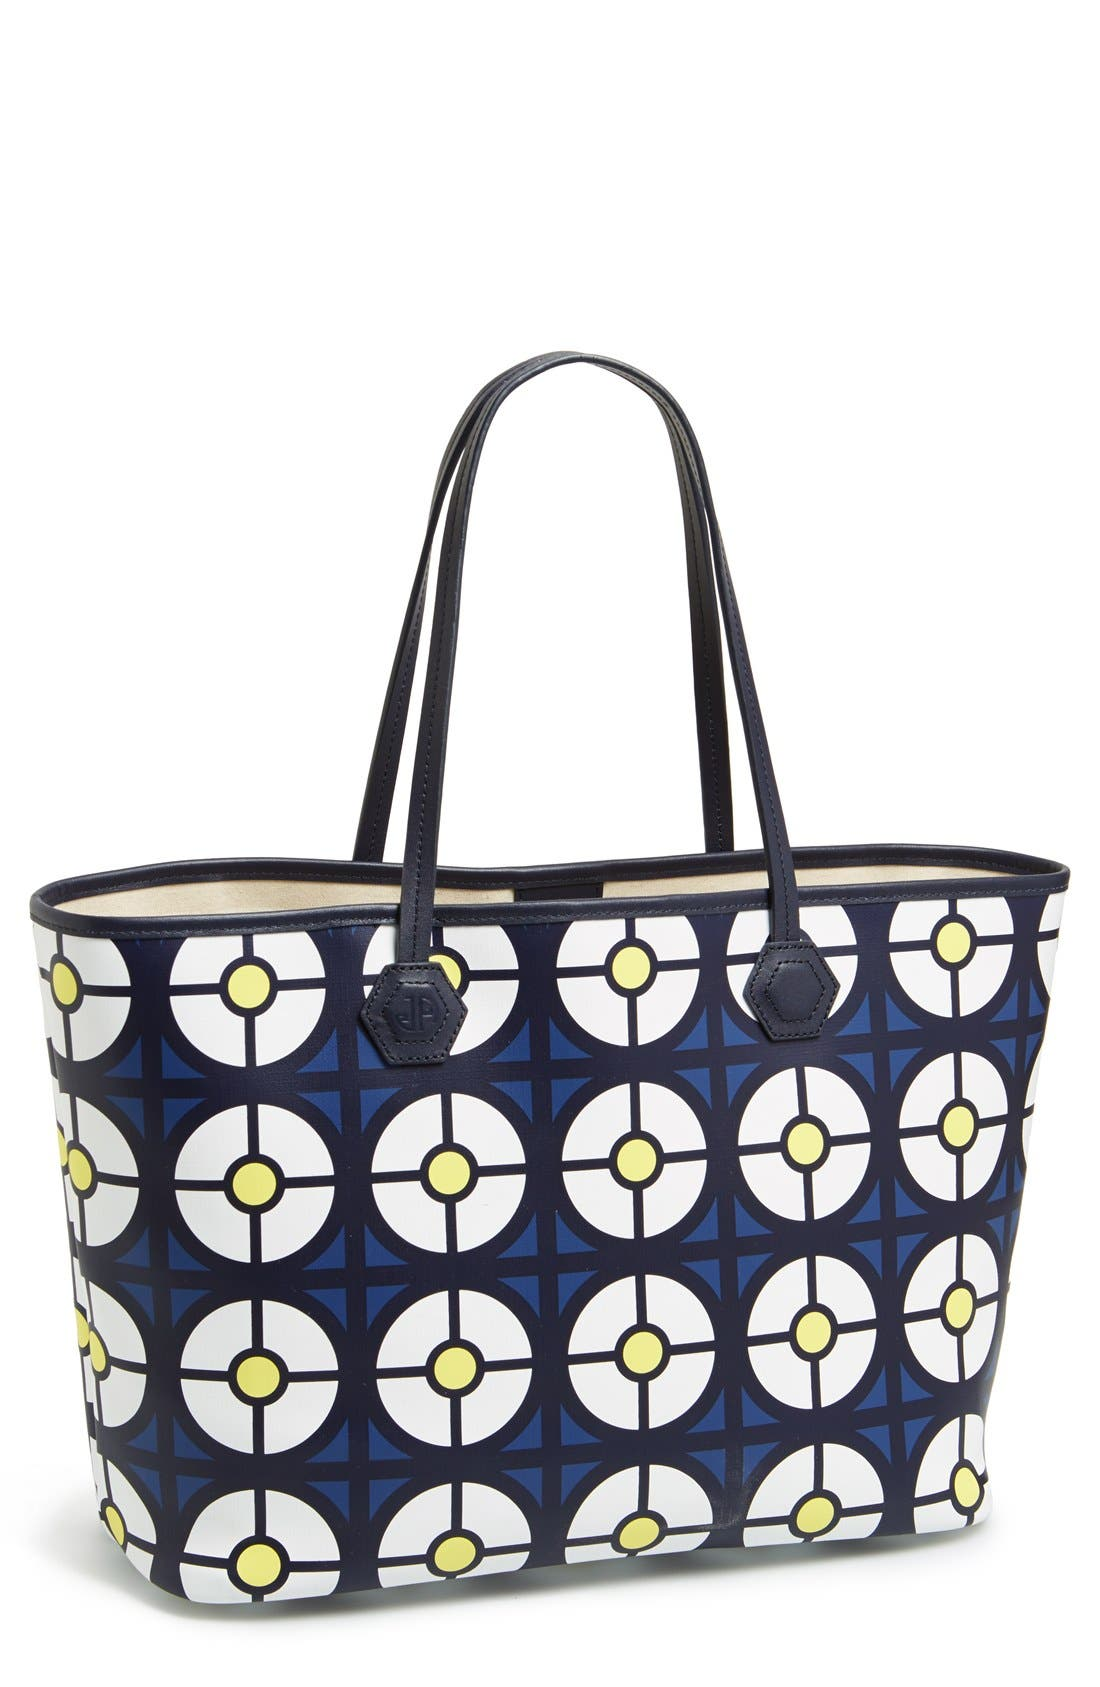 Alternate Image 1 Selected - Jonathan Adler 'Medium Duchess' Tote